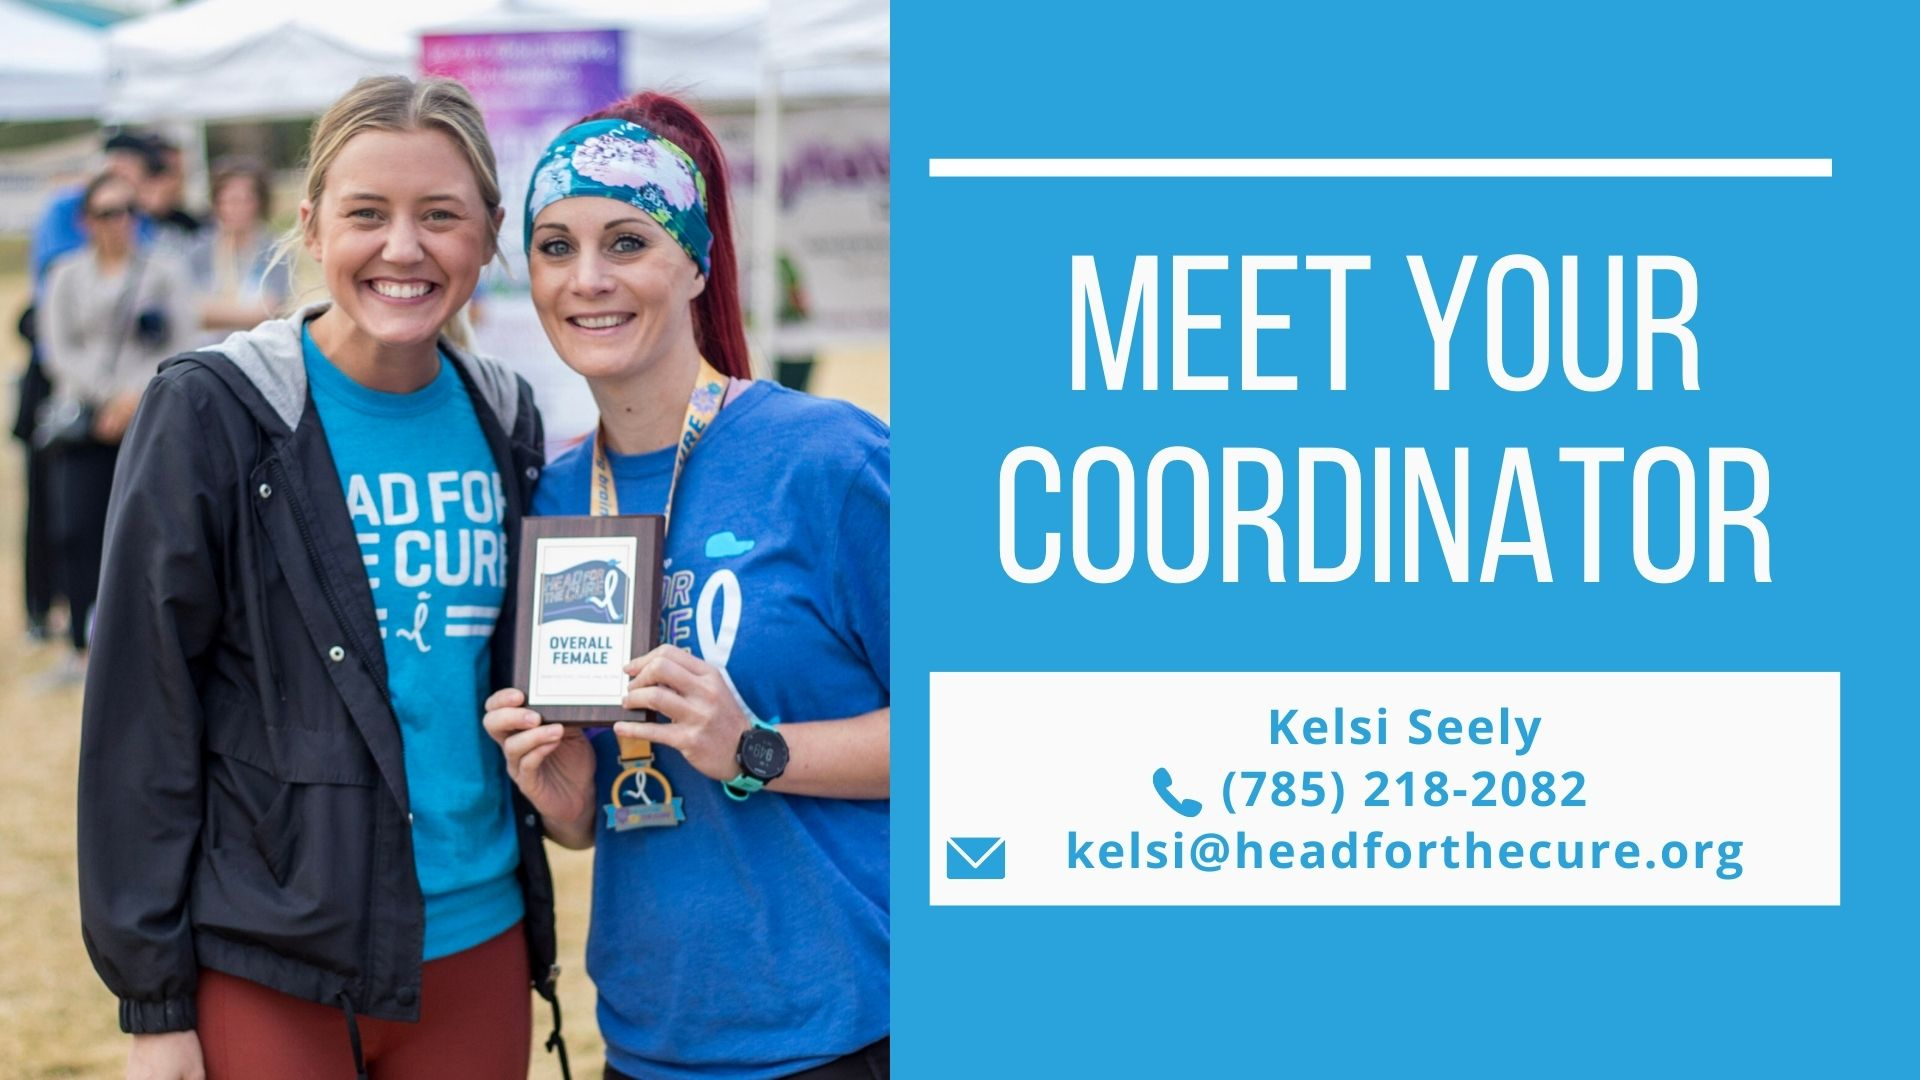 Meet your coordinator - Kelsi.jpg